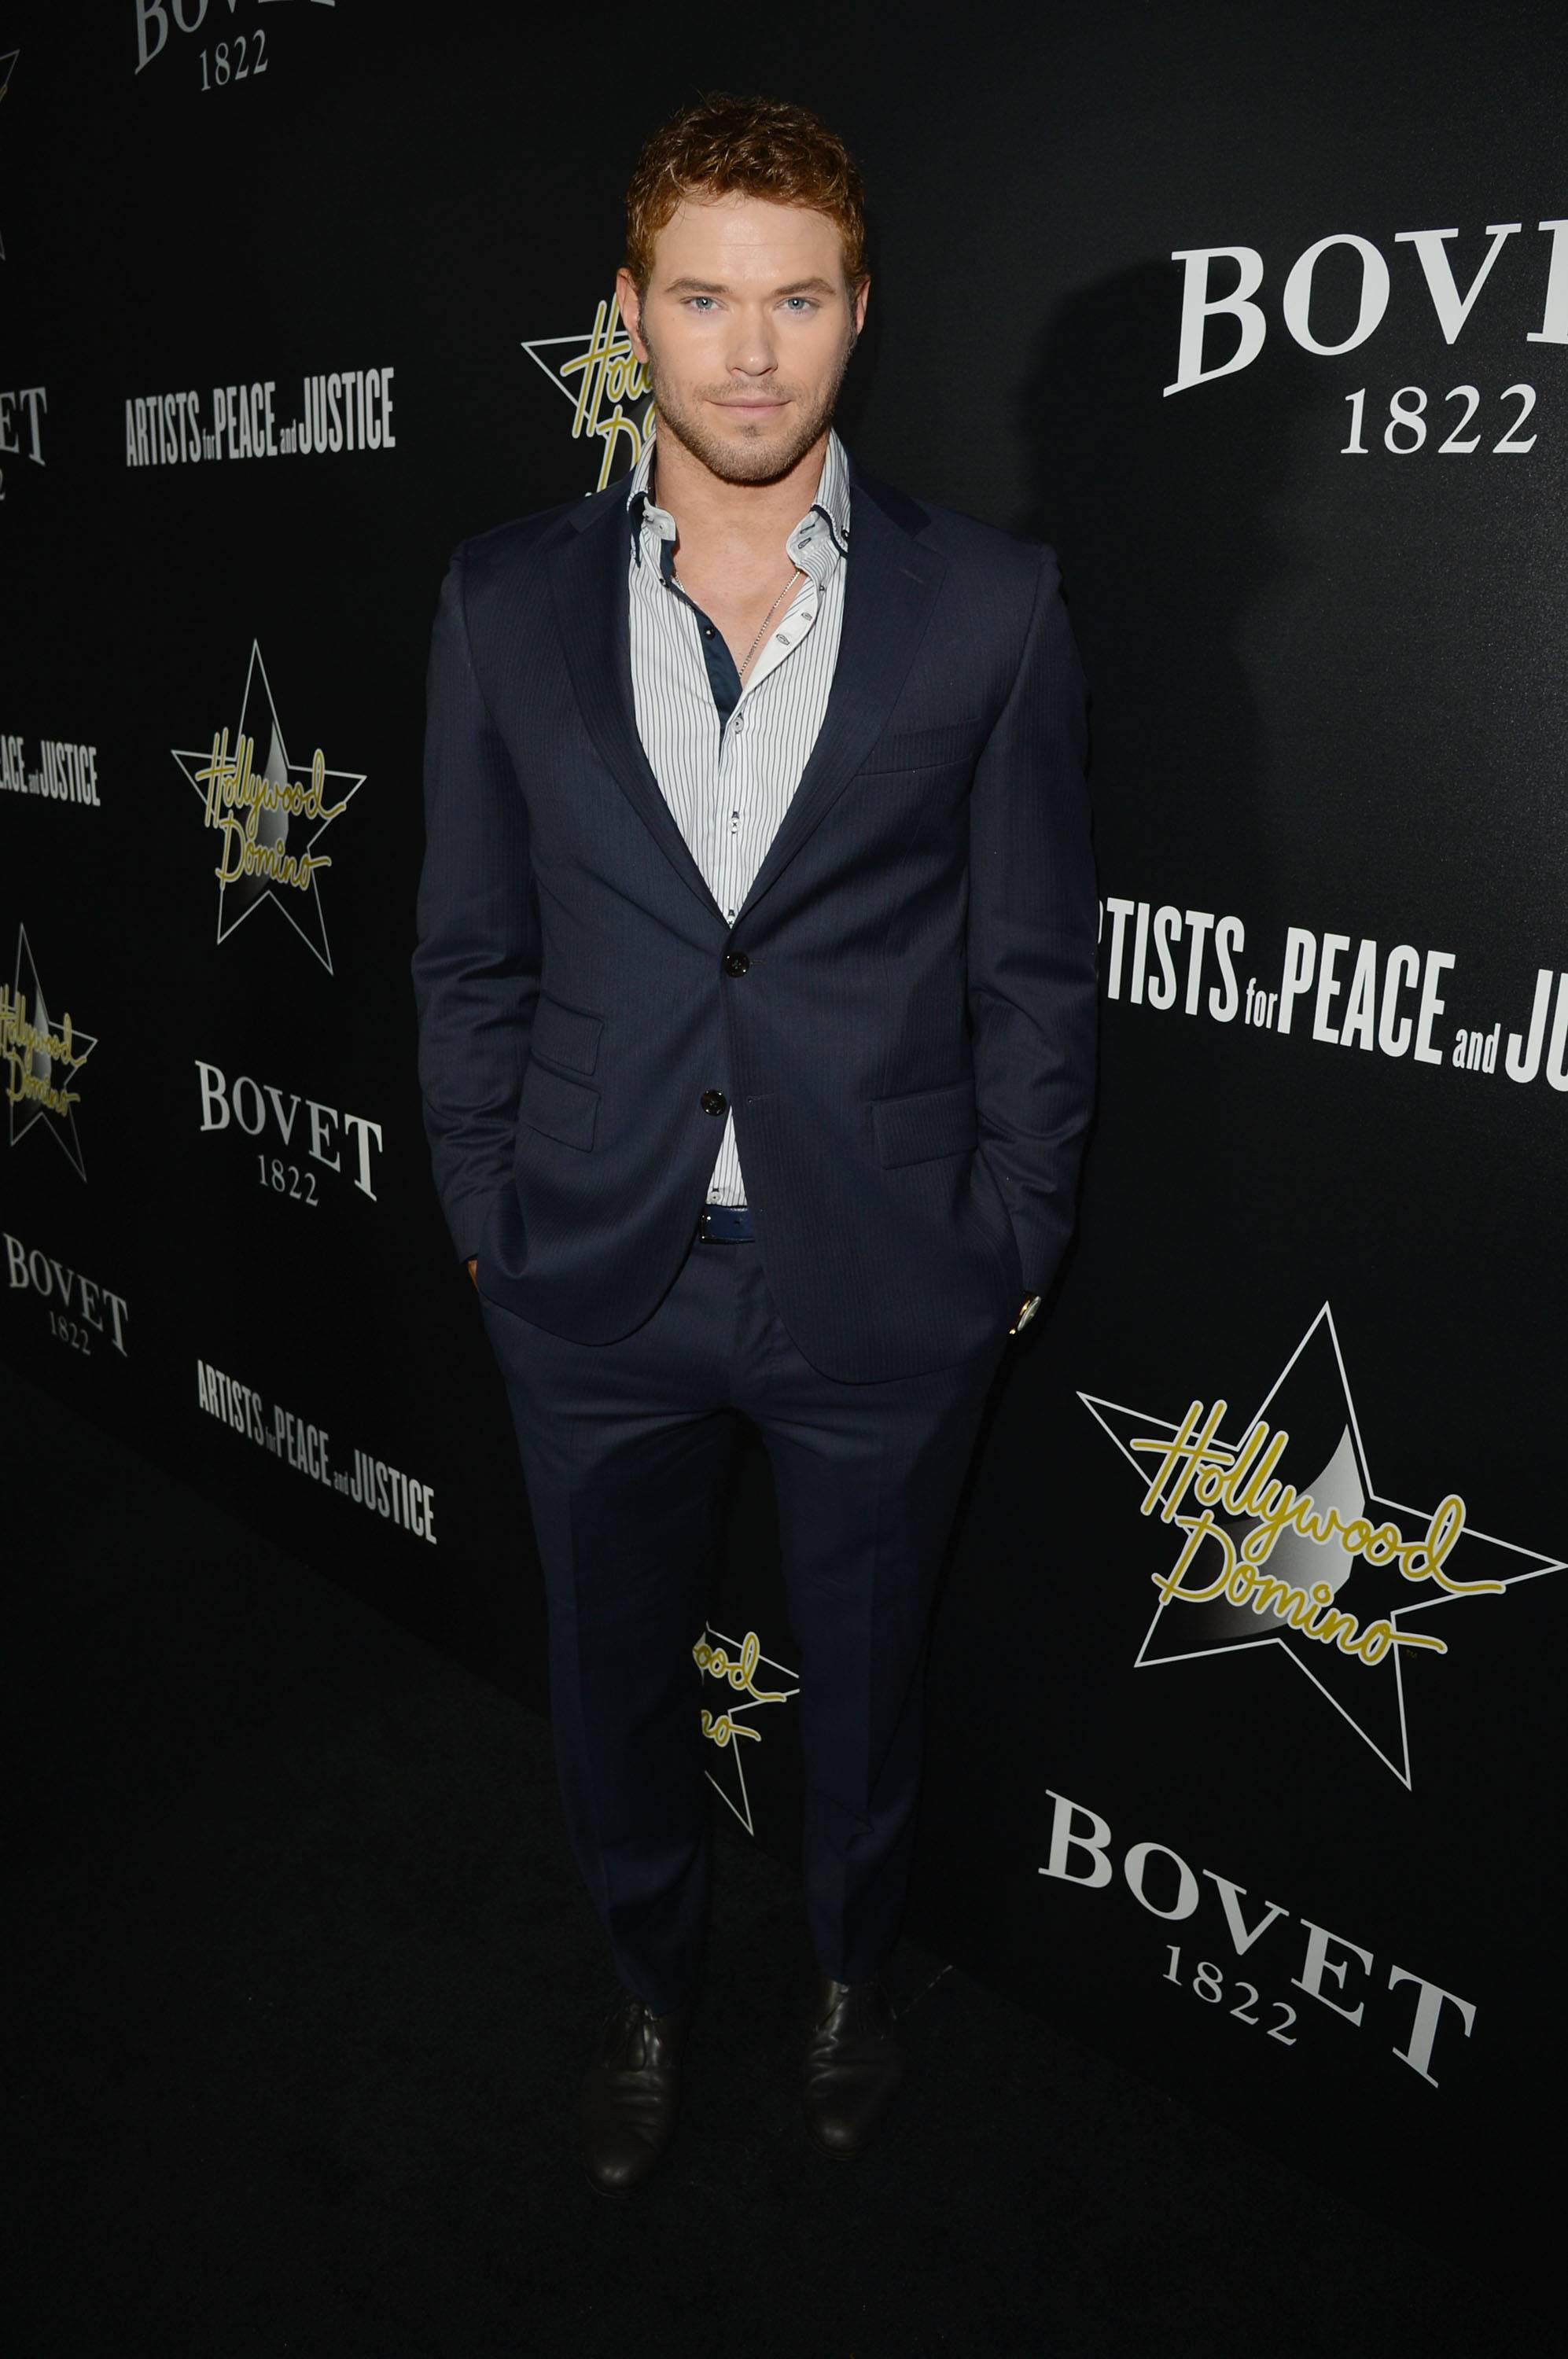 7th Annual Hollywood Domino And Bovet 1822 Gala Benefiting Artists For Peace And Justice - Red Carpet